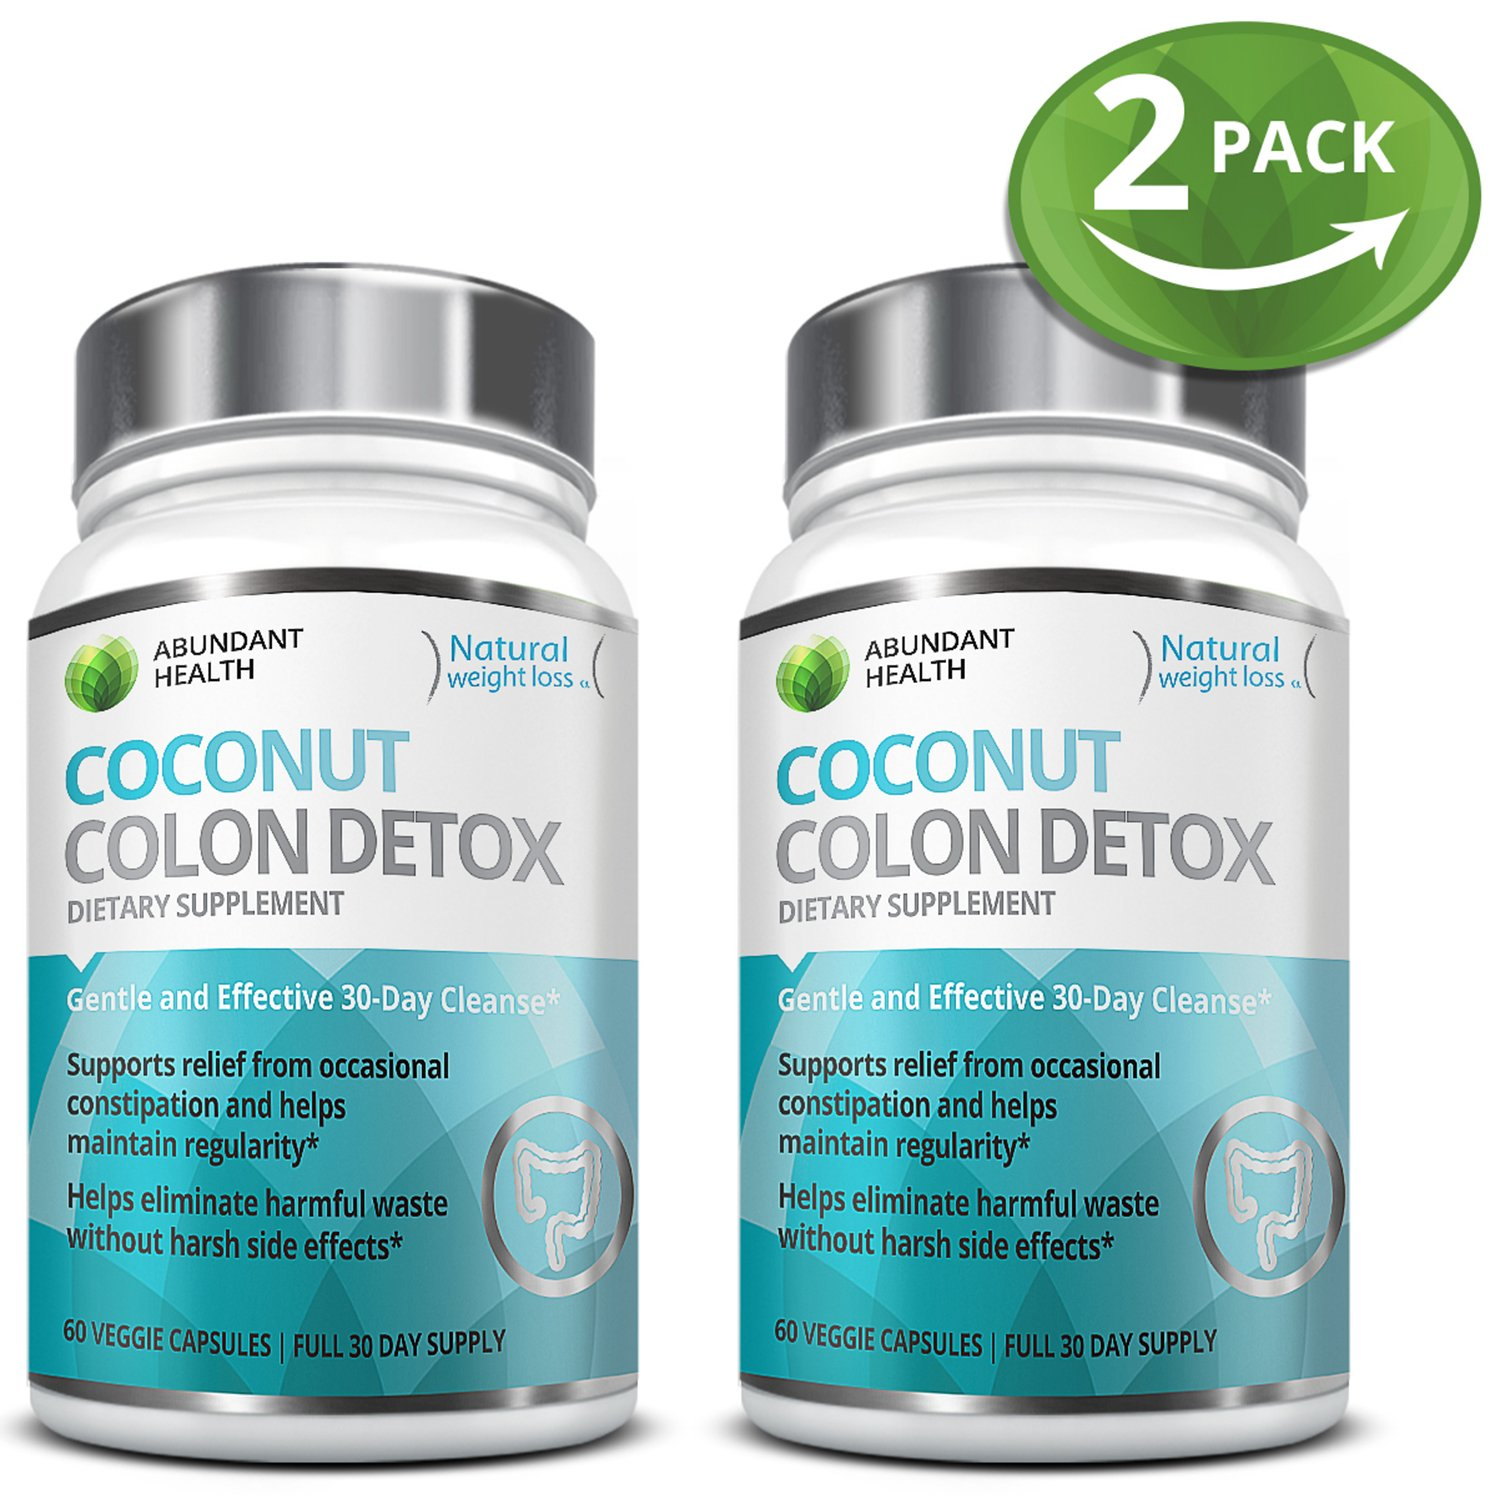 2 Bottle Bundle - Save an Extra 5% - Gentle Colon Detox Cleanse HELPS Reduce Bloating Constipation and Weight Loss 30 Day Quick Cleanse